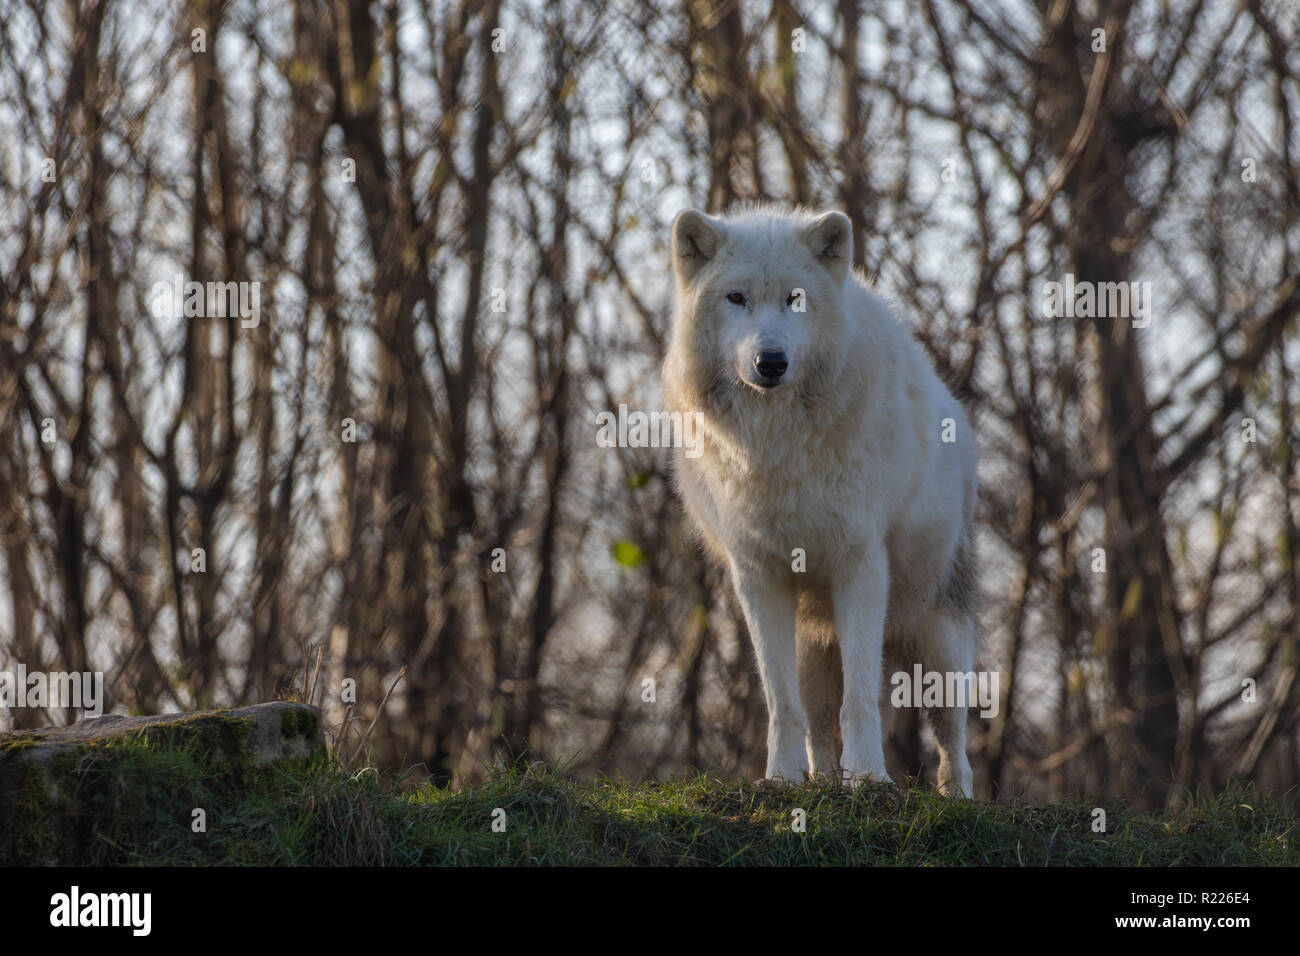 Arctic wolf (Canis lupus arctos), also known as the white wolf or polar wolf, - Stock Image